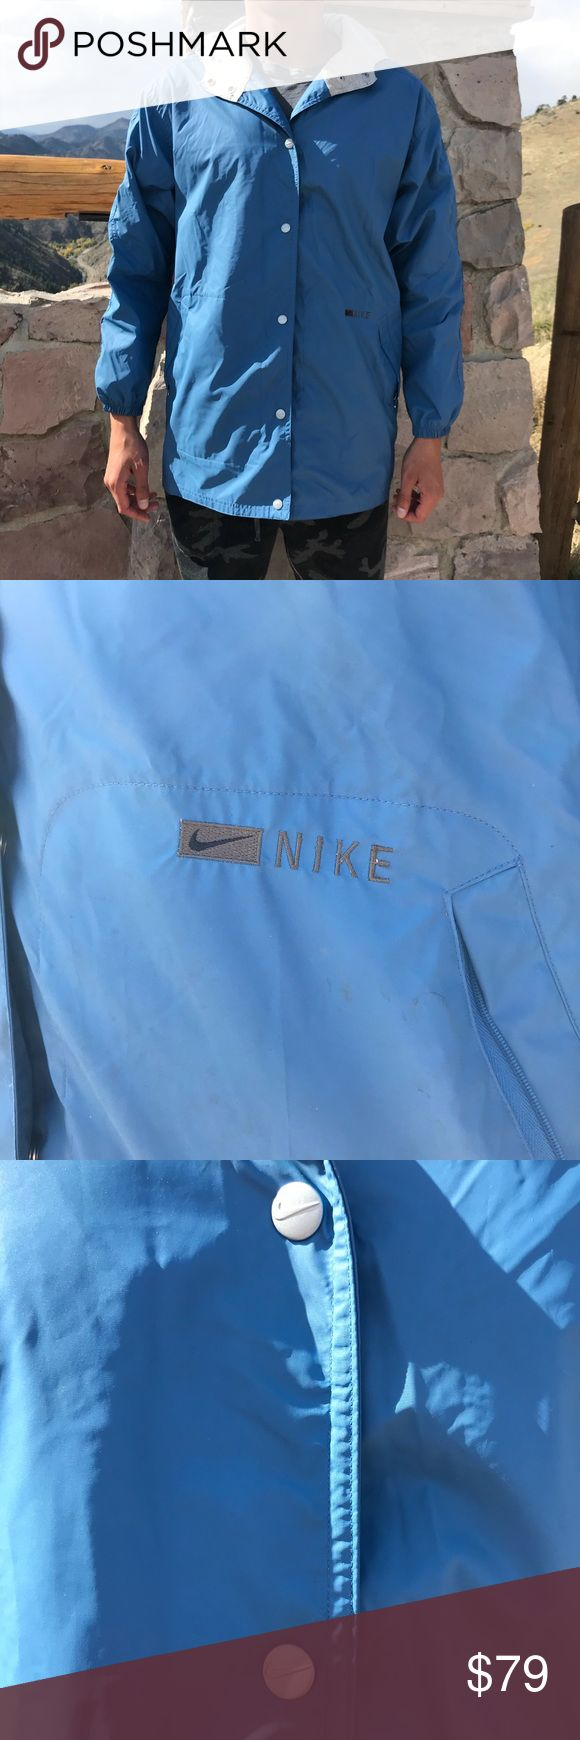 🔥🔥Rare Vintage Nike Jacket This jacket rare vintage Nike jacket is in excellent condition with no defects. Nike swoosh logo on all of the snap buttons. Nike logo on front and back.  Nylon on outside and lining cotton polyester blend. Sky blue color. ⭐️Smoke-free and pet-free home. No trades.  Will work with reasonable offer! Will answer any questions. 1-2 day shipping. BUNDLE to get more out of your shipping and to SAVE with discounts!⭐️ Nike Jackets & Coats